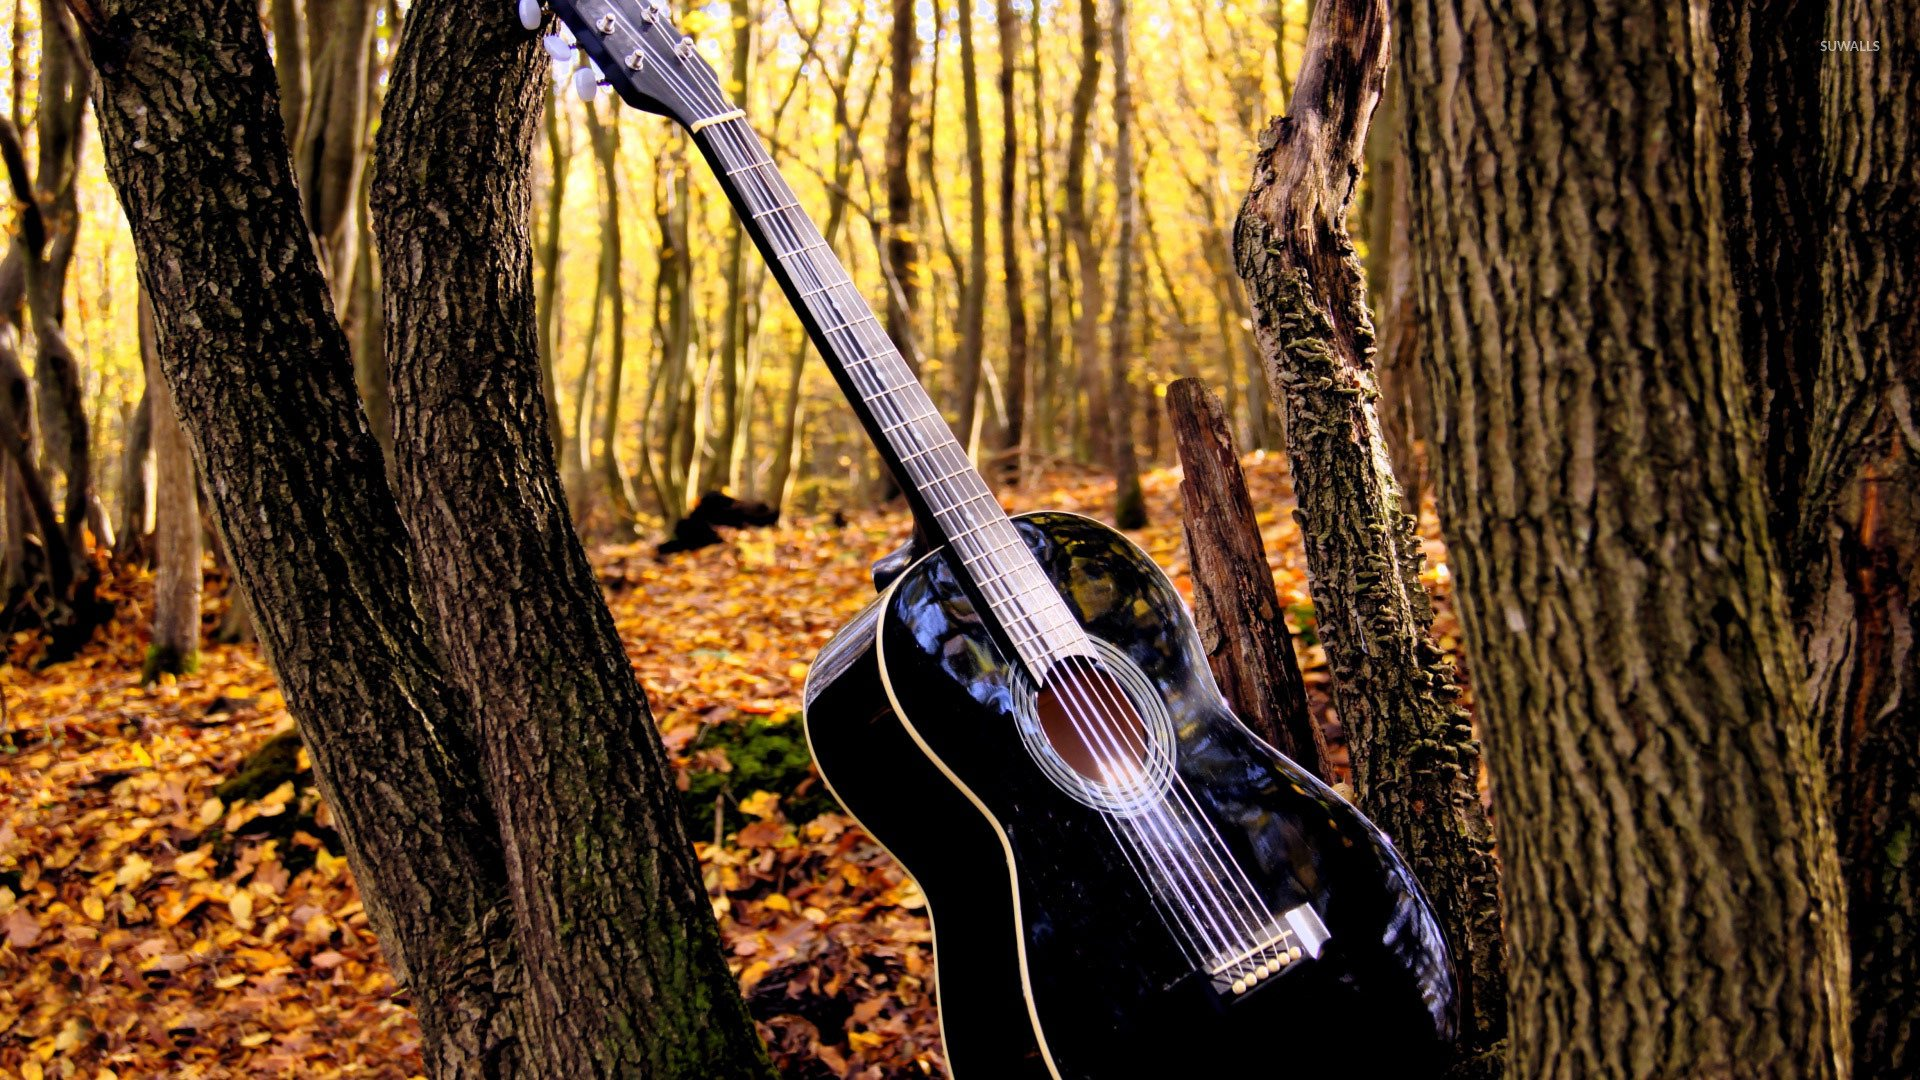 Cool Country Guitar Wallpaper In The Forest Pictures 1920x1080